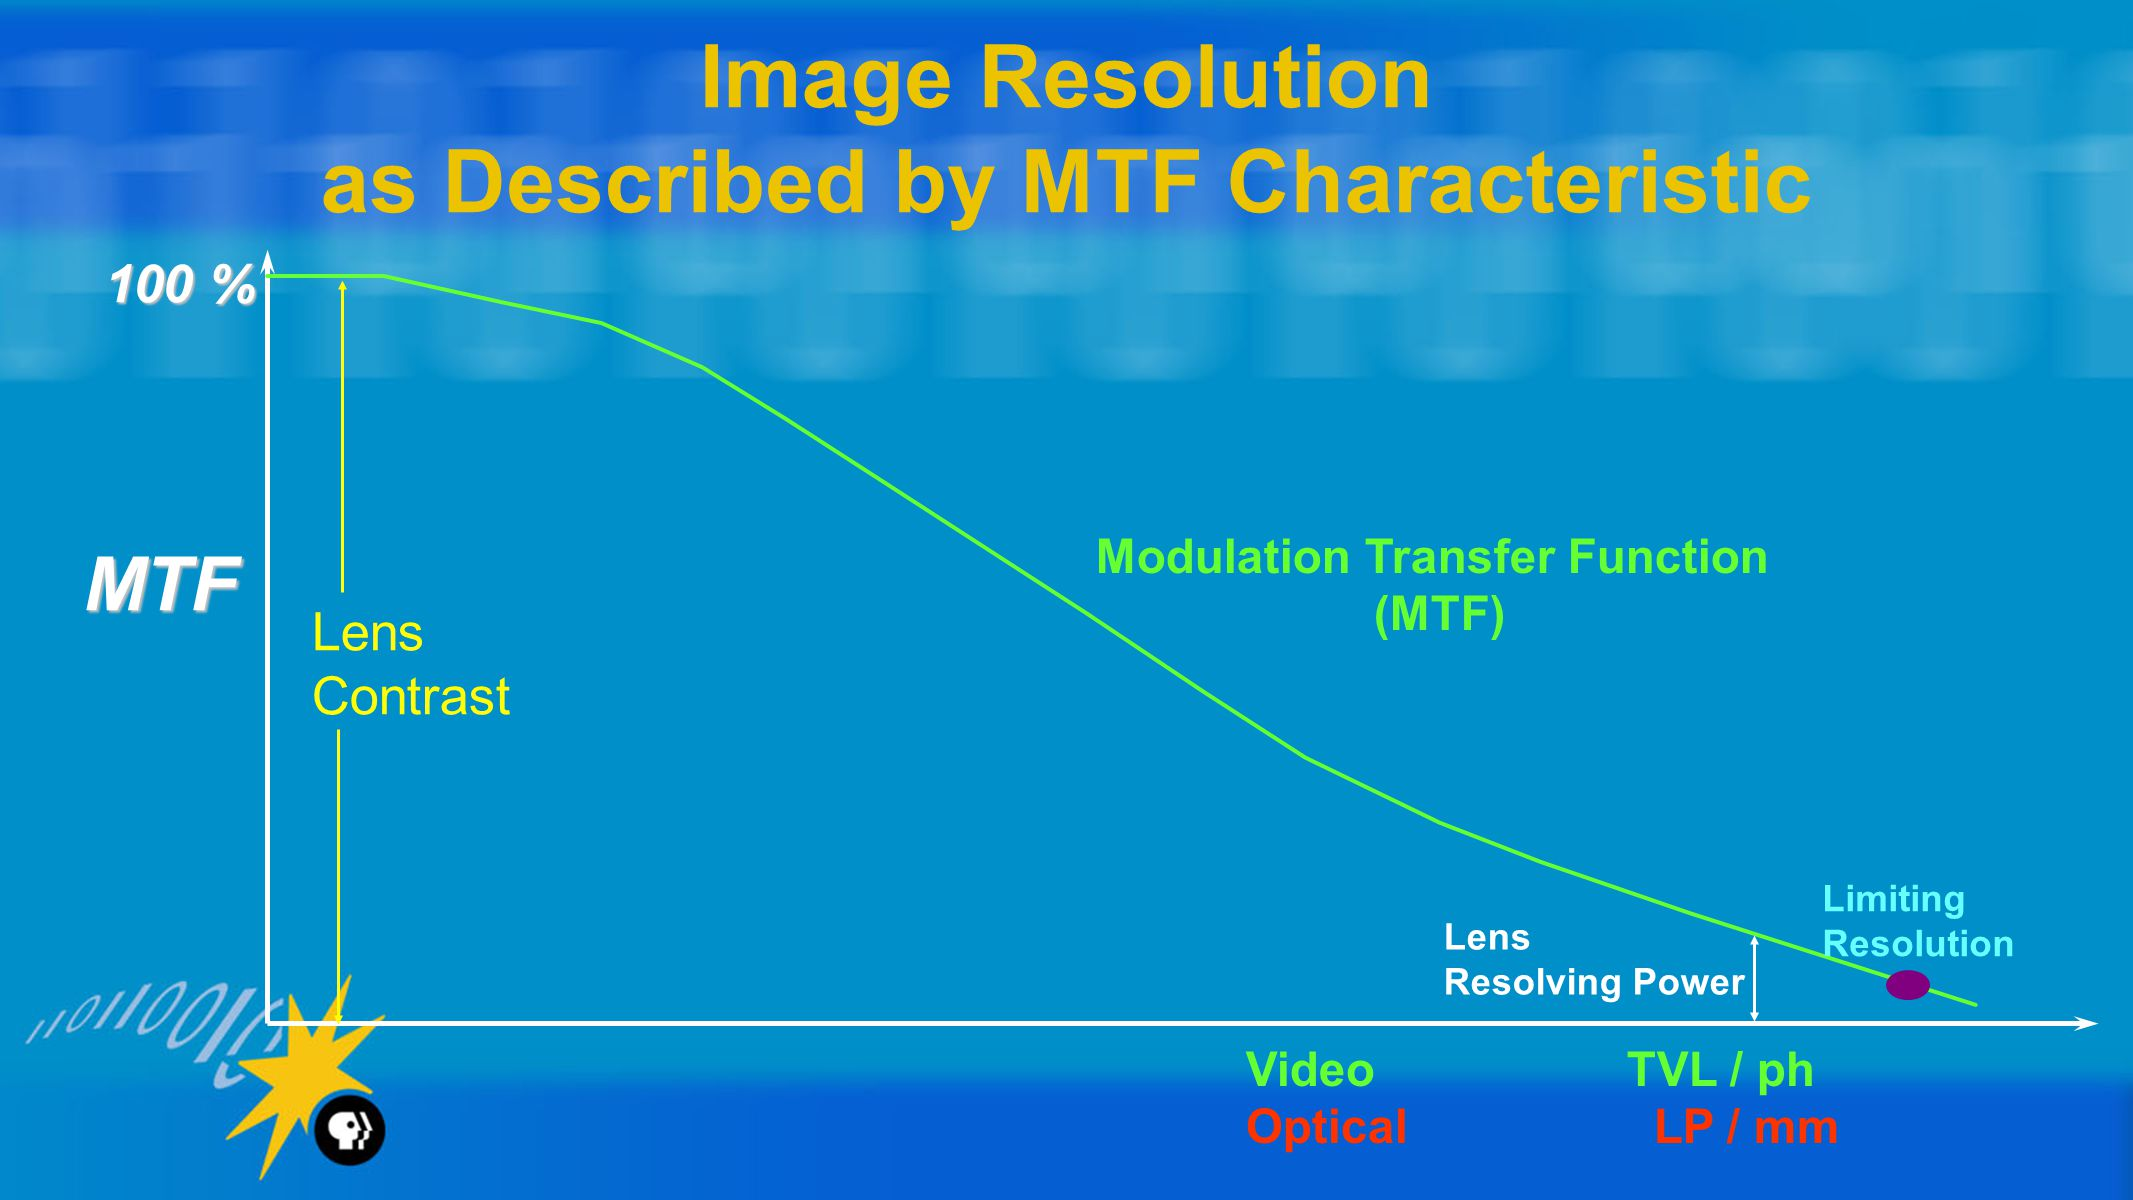 Image Resolution as Described by MTF Characteristic VideoTVL / ph Optical LP / mm MTF 100 % Modulation Transfer Function (MTF) Limiting Resolution Lens Contrast Lens Resolving Power